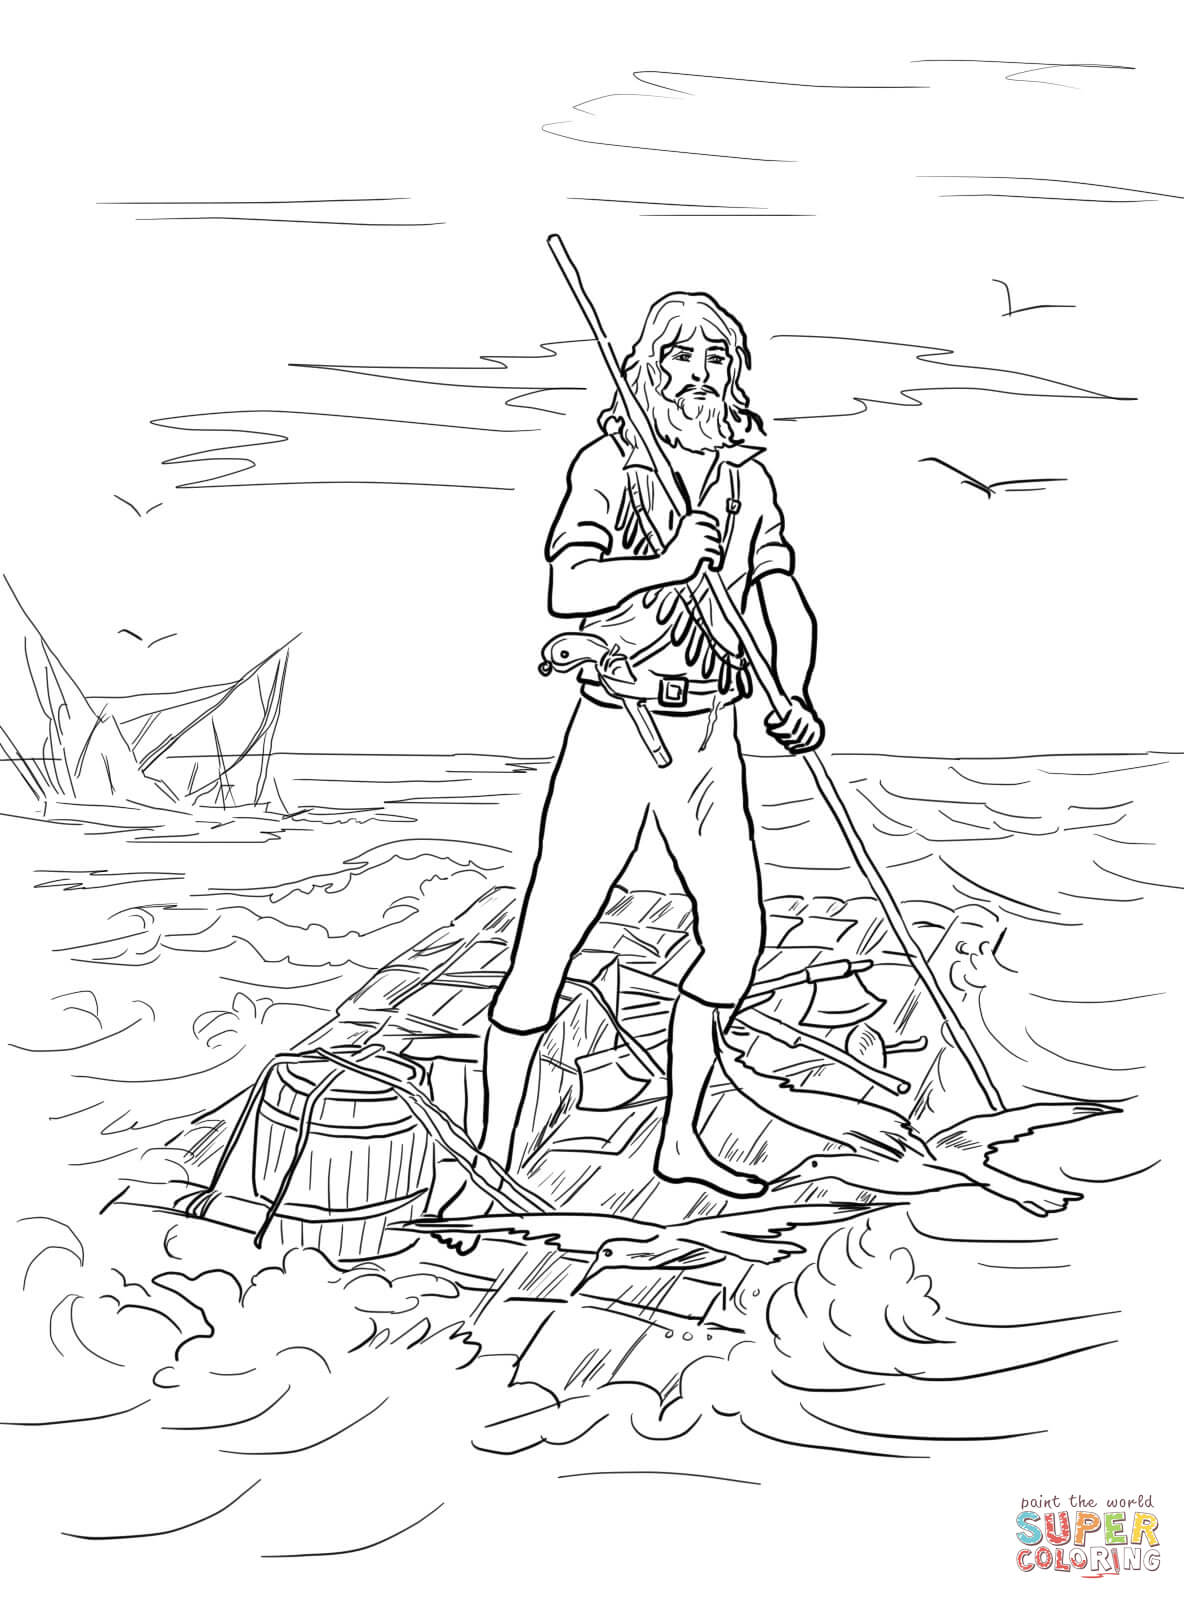 1184x1600 Robinson Crusoe On A Raft After Shipwrecked Coloring Page Free